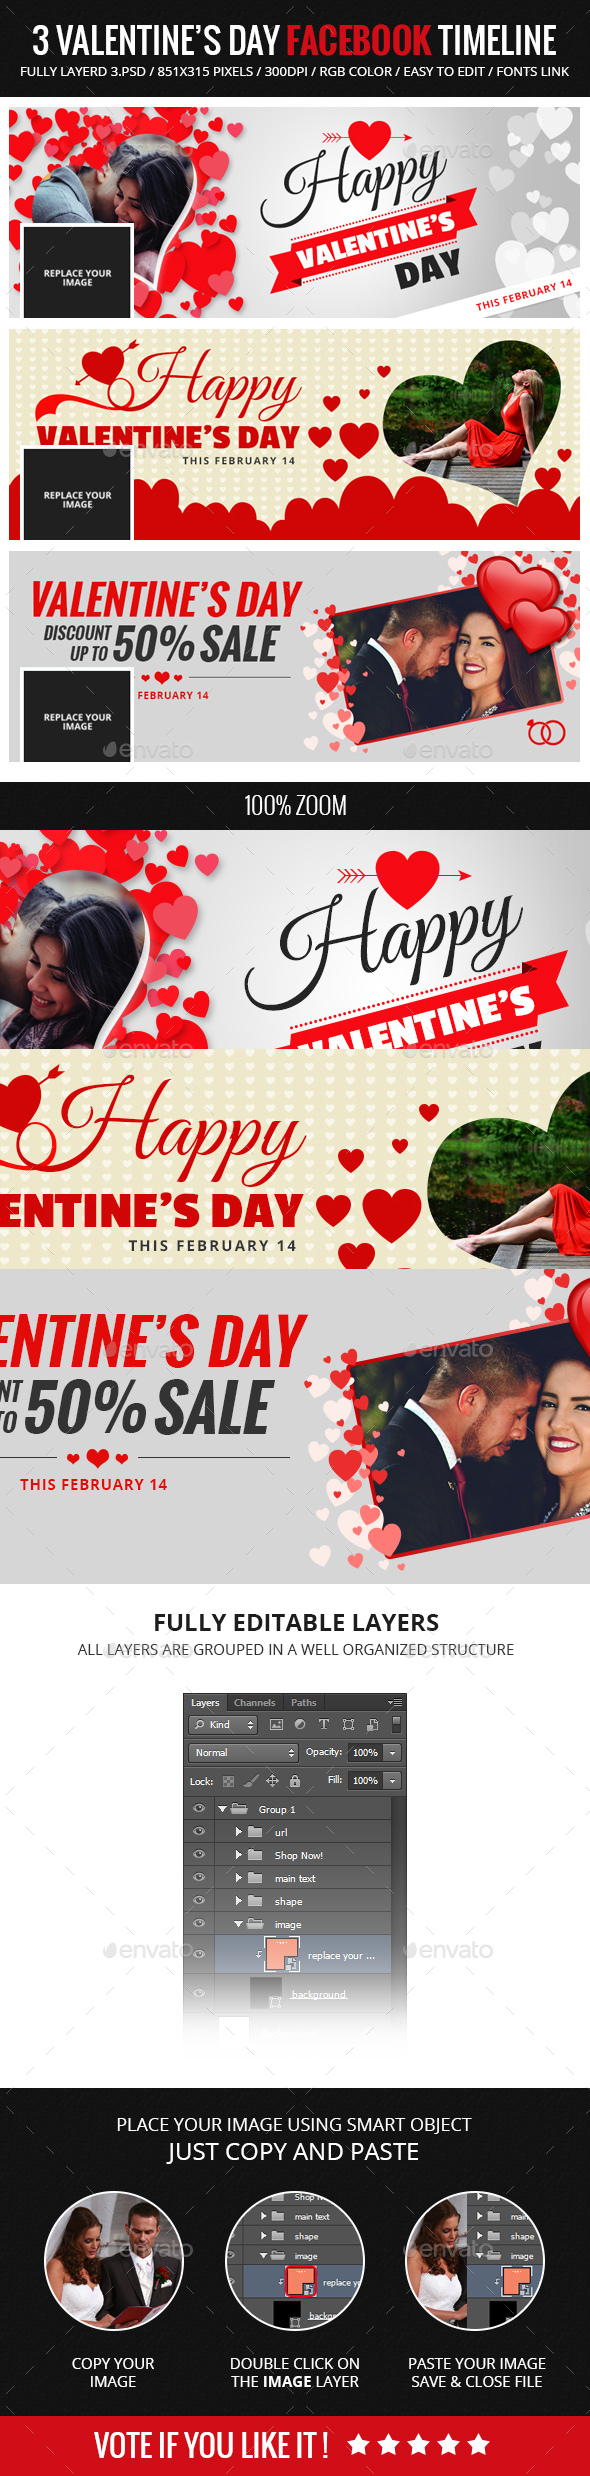 Facebook Cover Banner Valentines Day